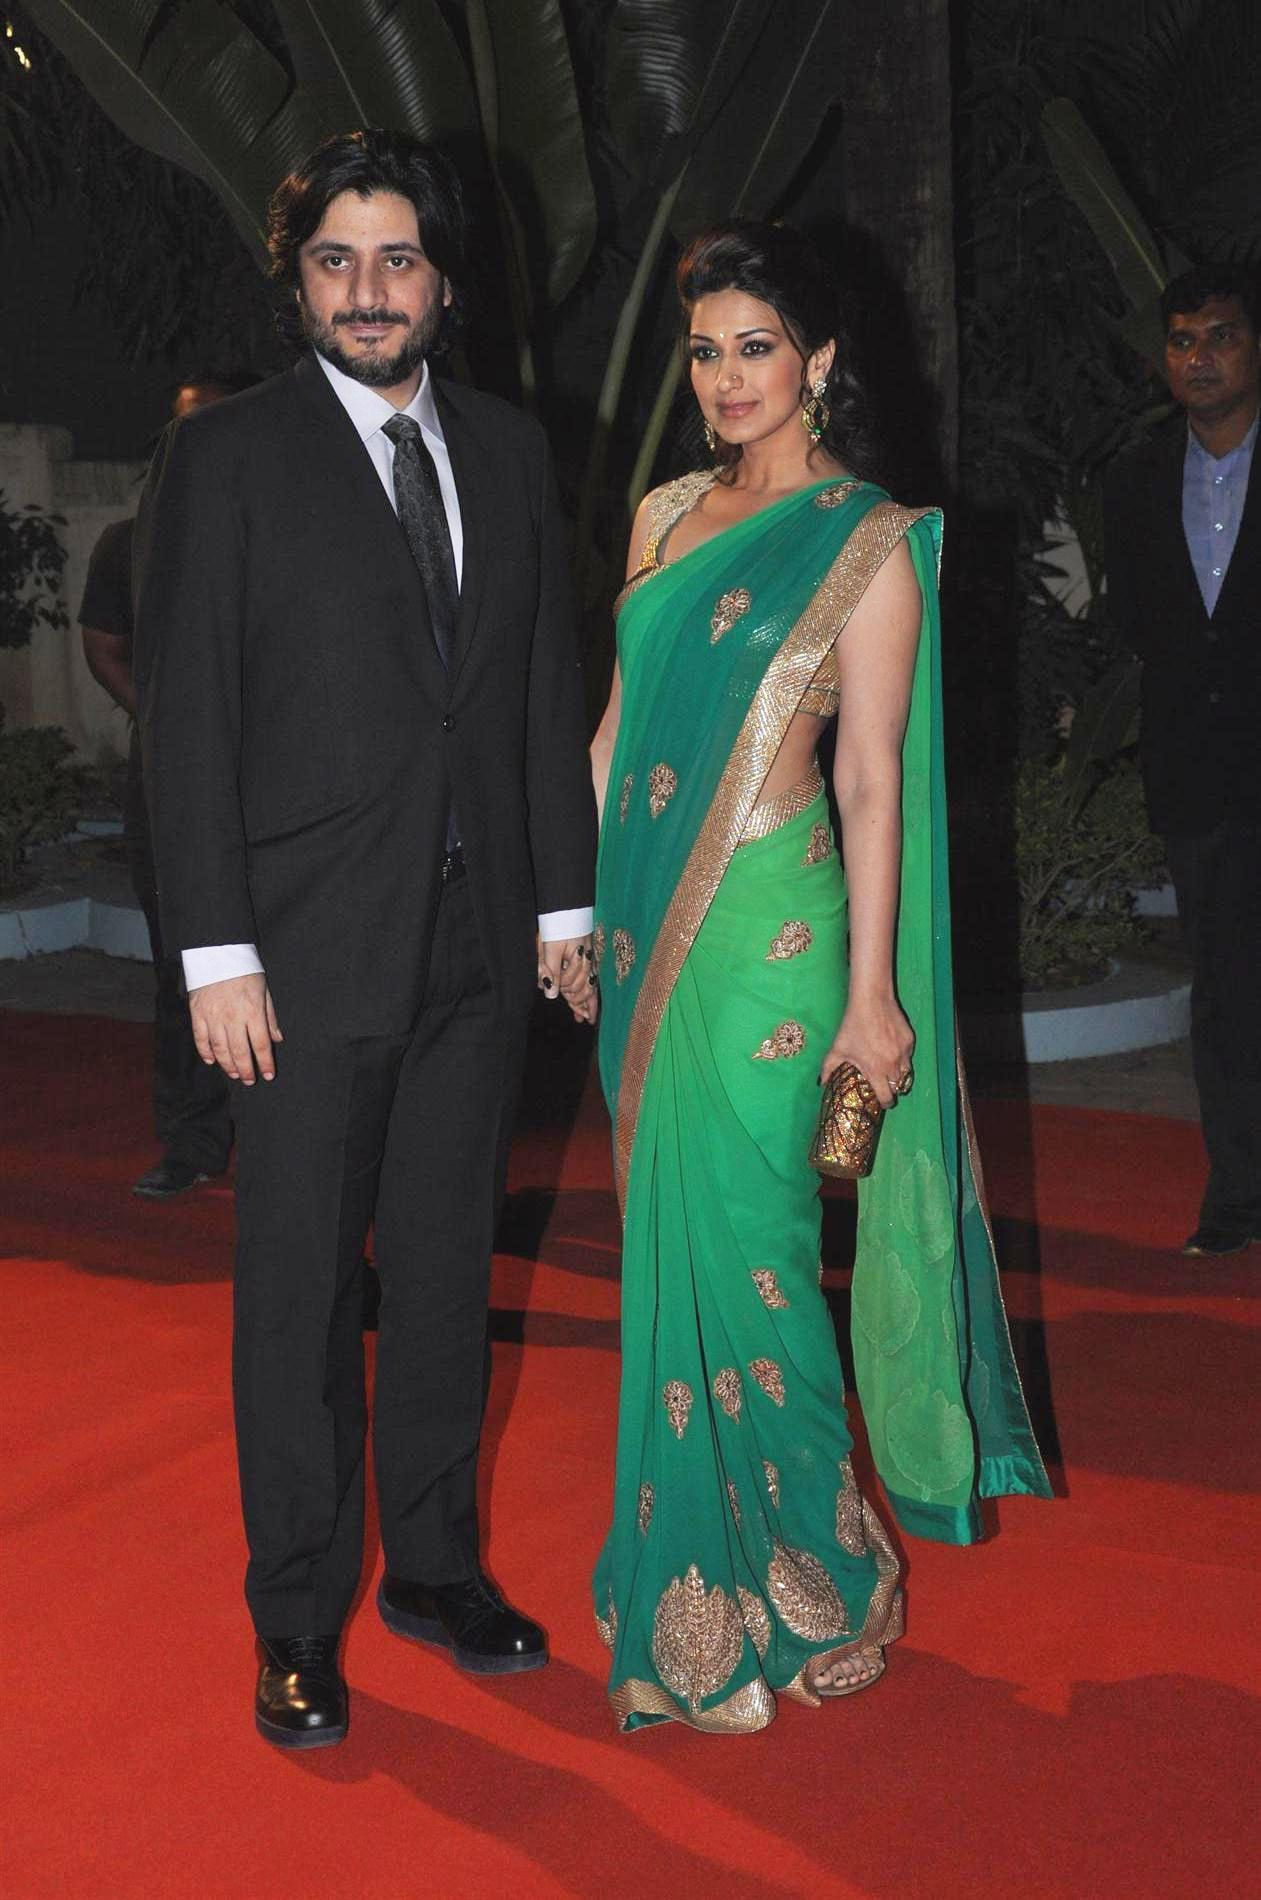 Sonali bendre with husband success